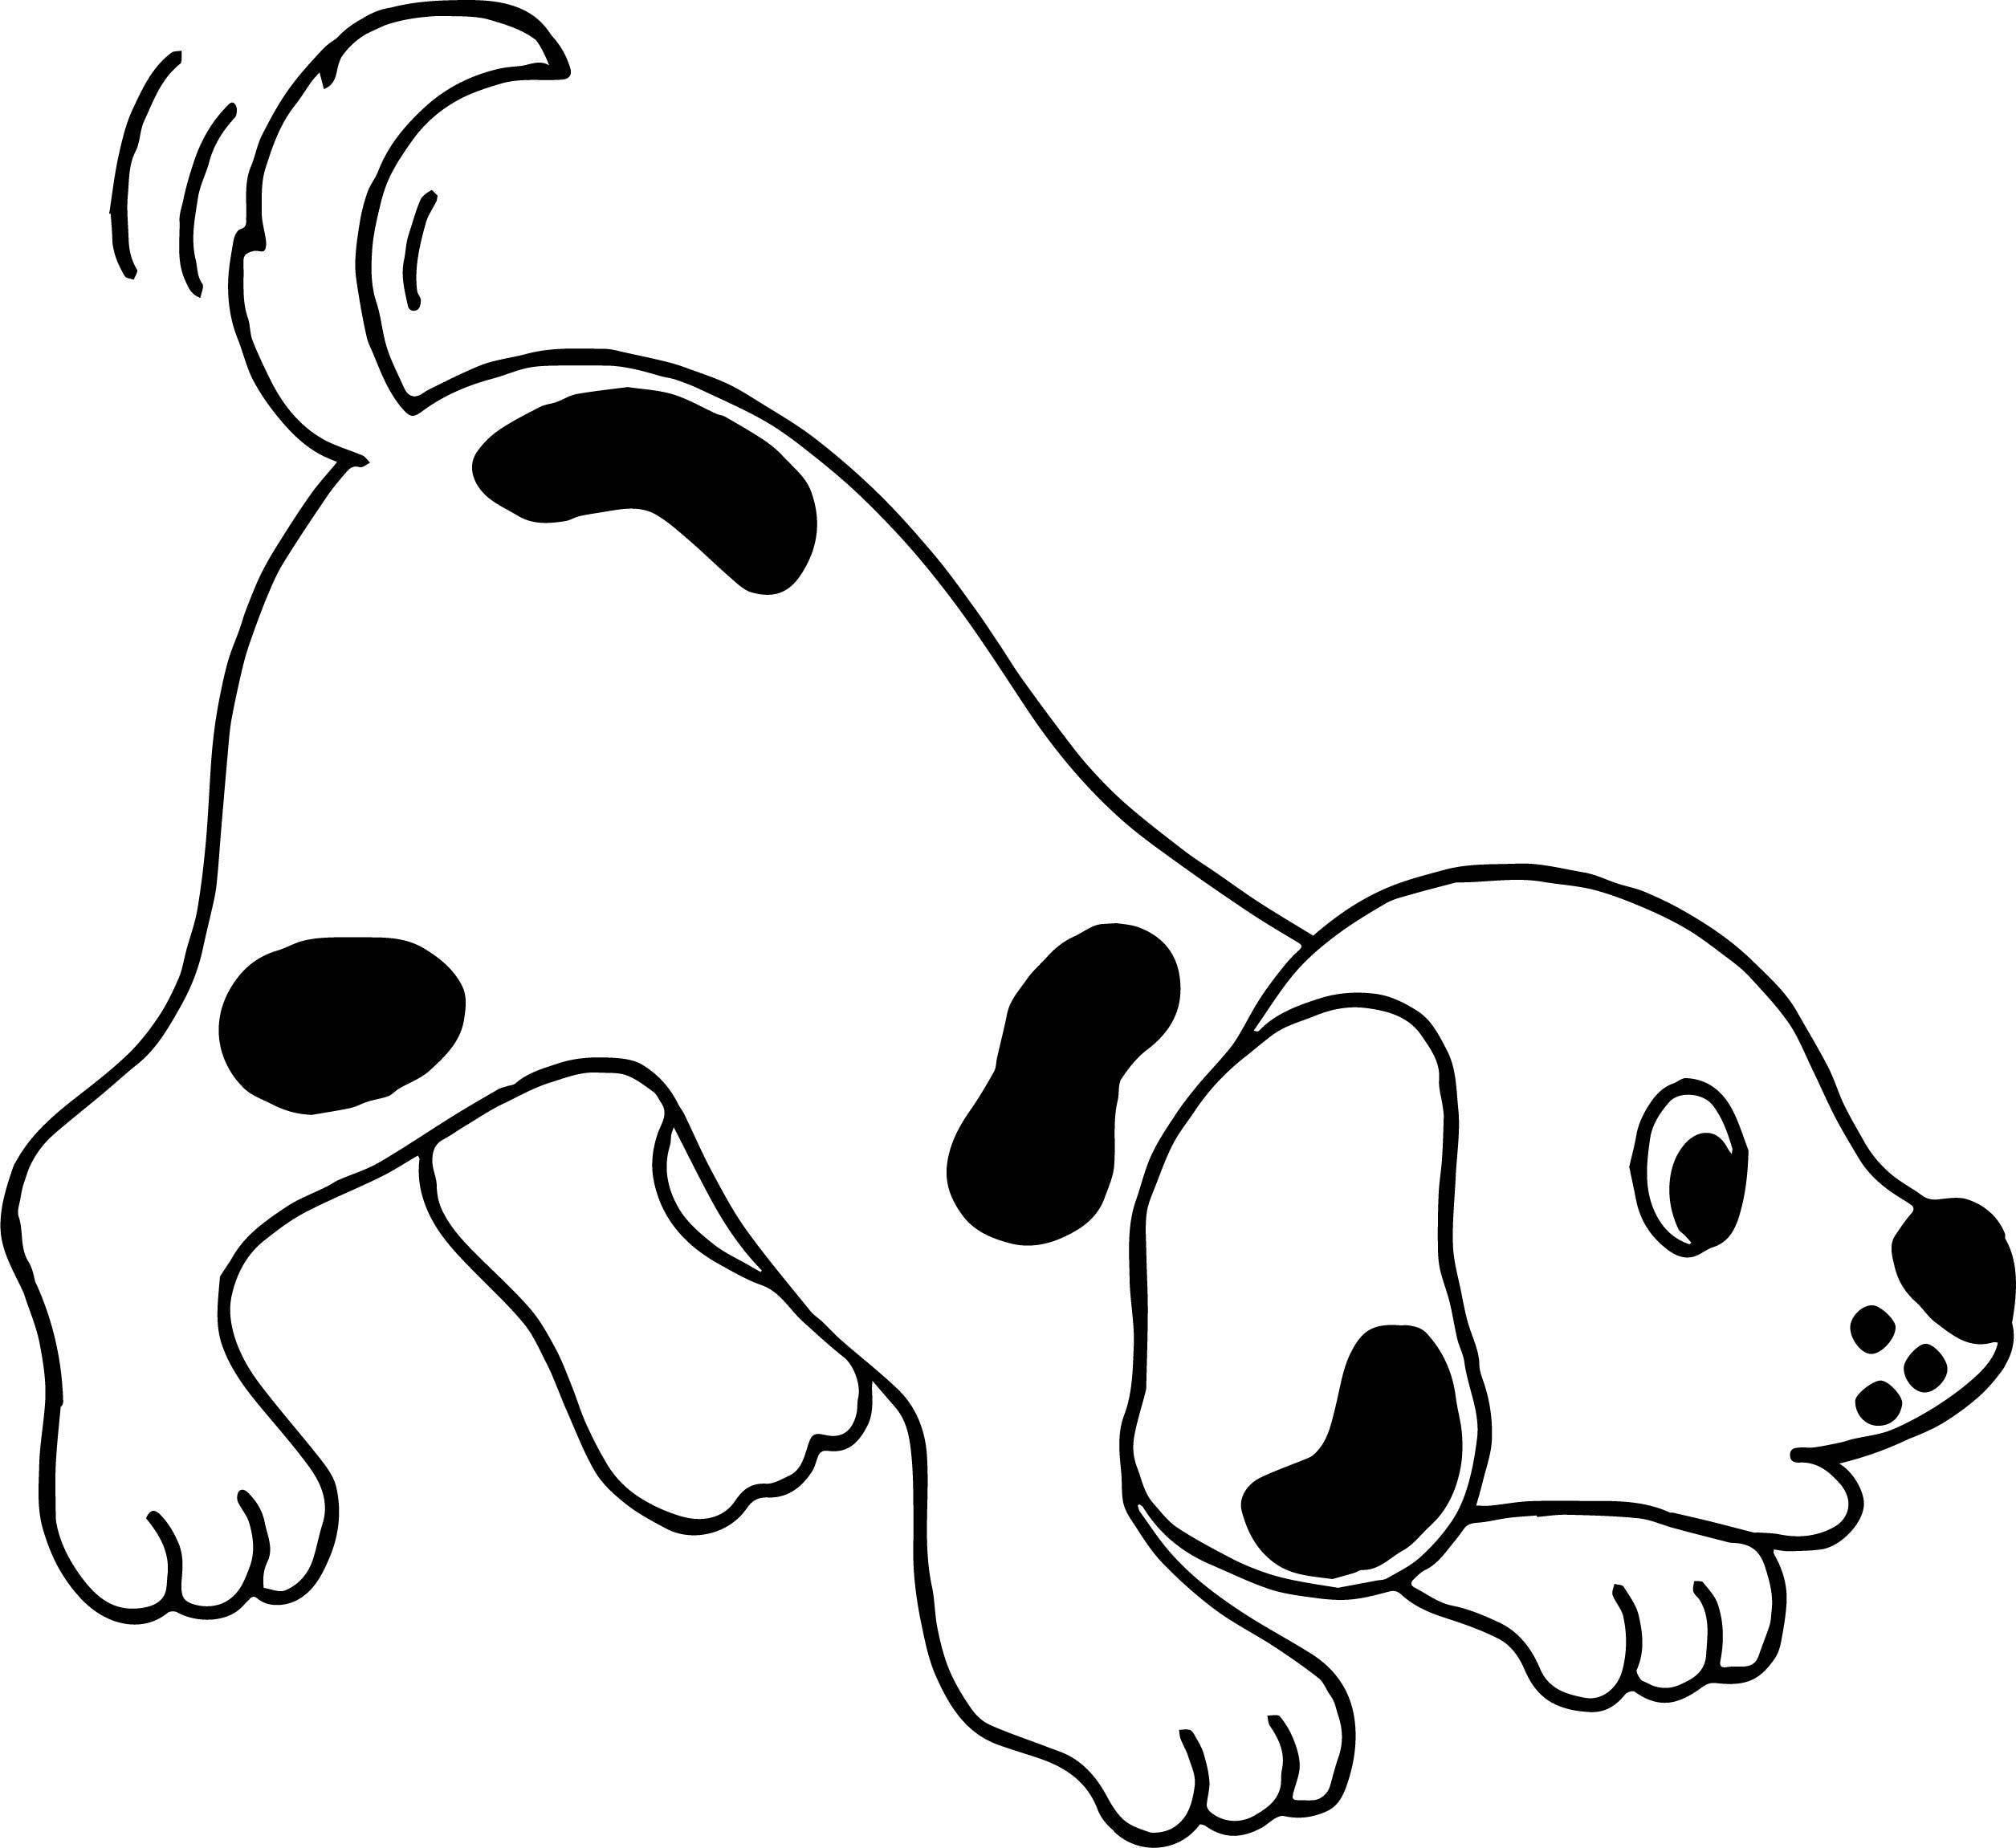 Crying Puppy Playful Cartoon Puppy Dog Coloring Page Https Cstu